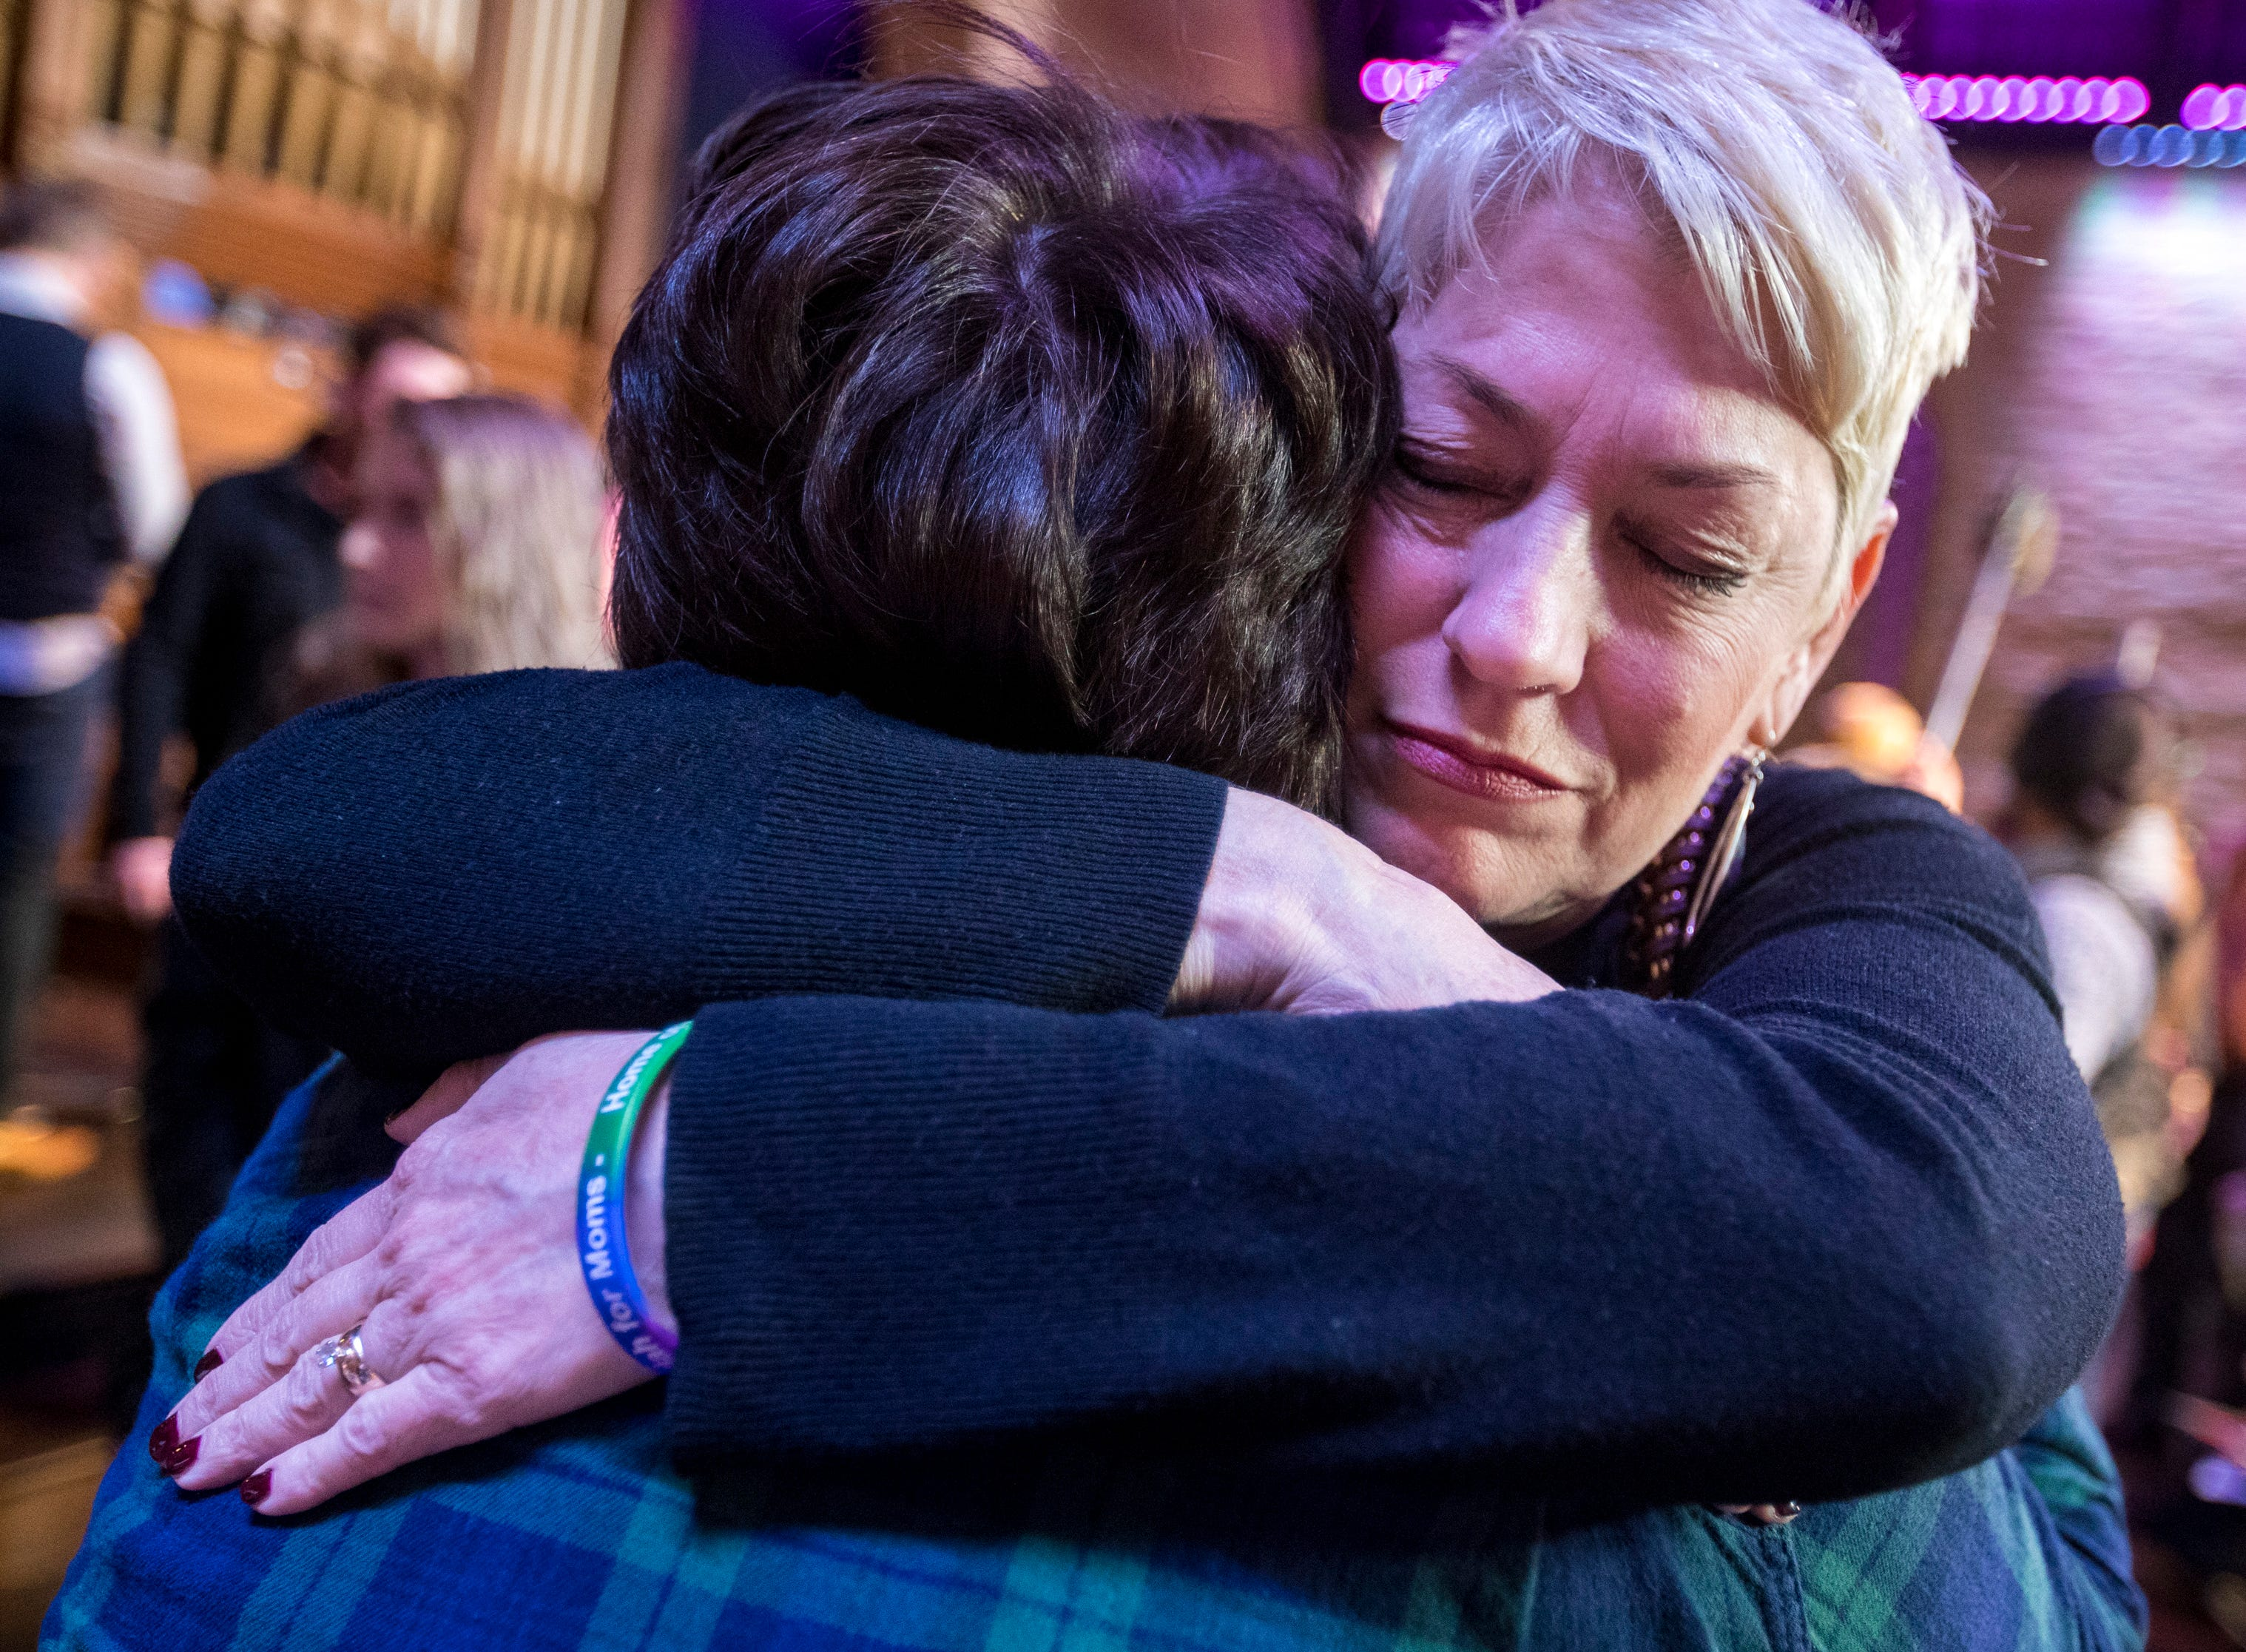 Sara Cunningham hugs Emily Wilkerson at GracePointe Church in Nashville on Sunday, March 31, 2019. Cunningham spoke about her journey to accepting her son as a gay man while keeping her faith.